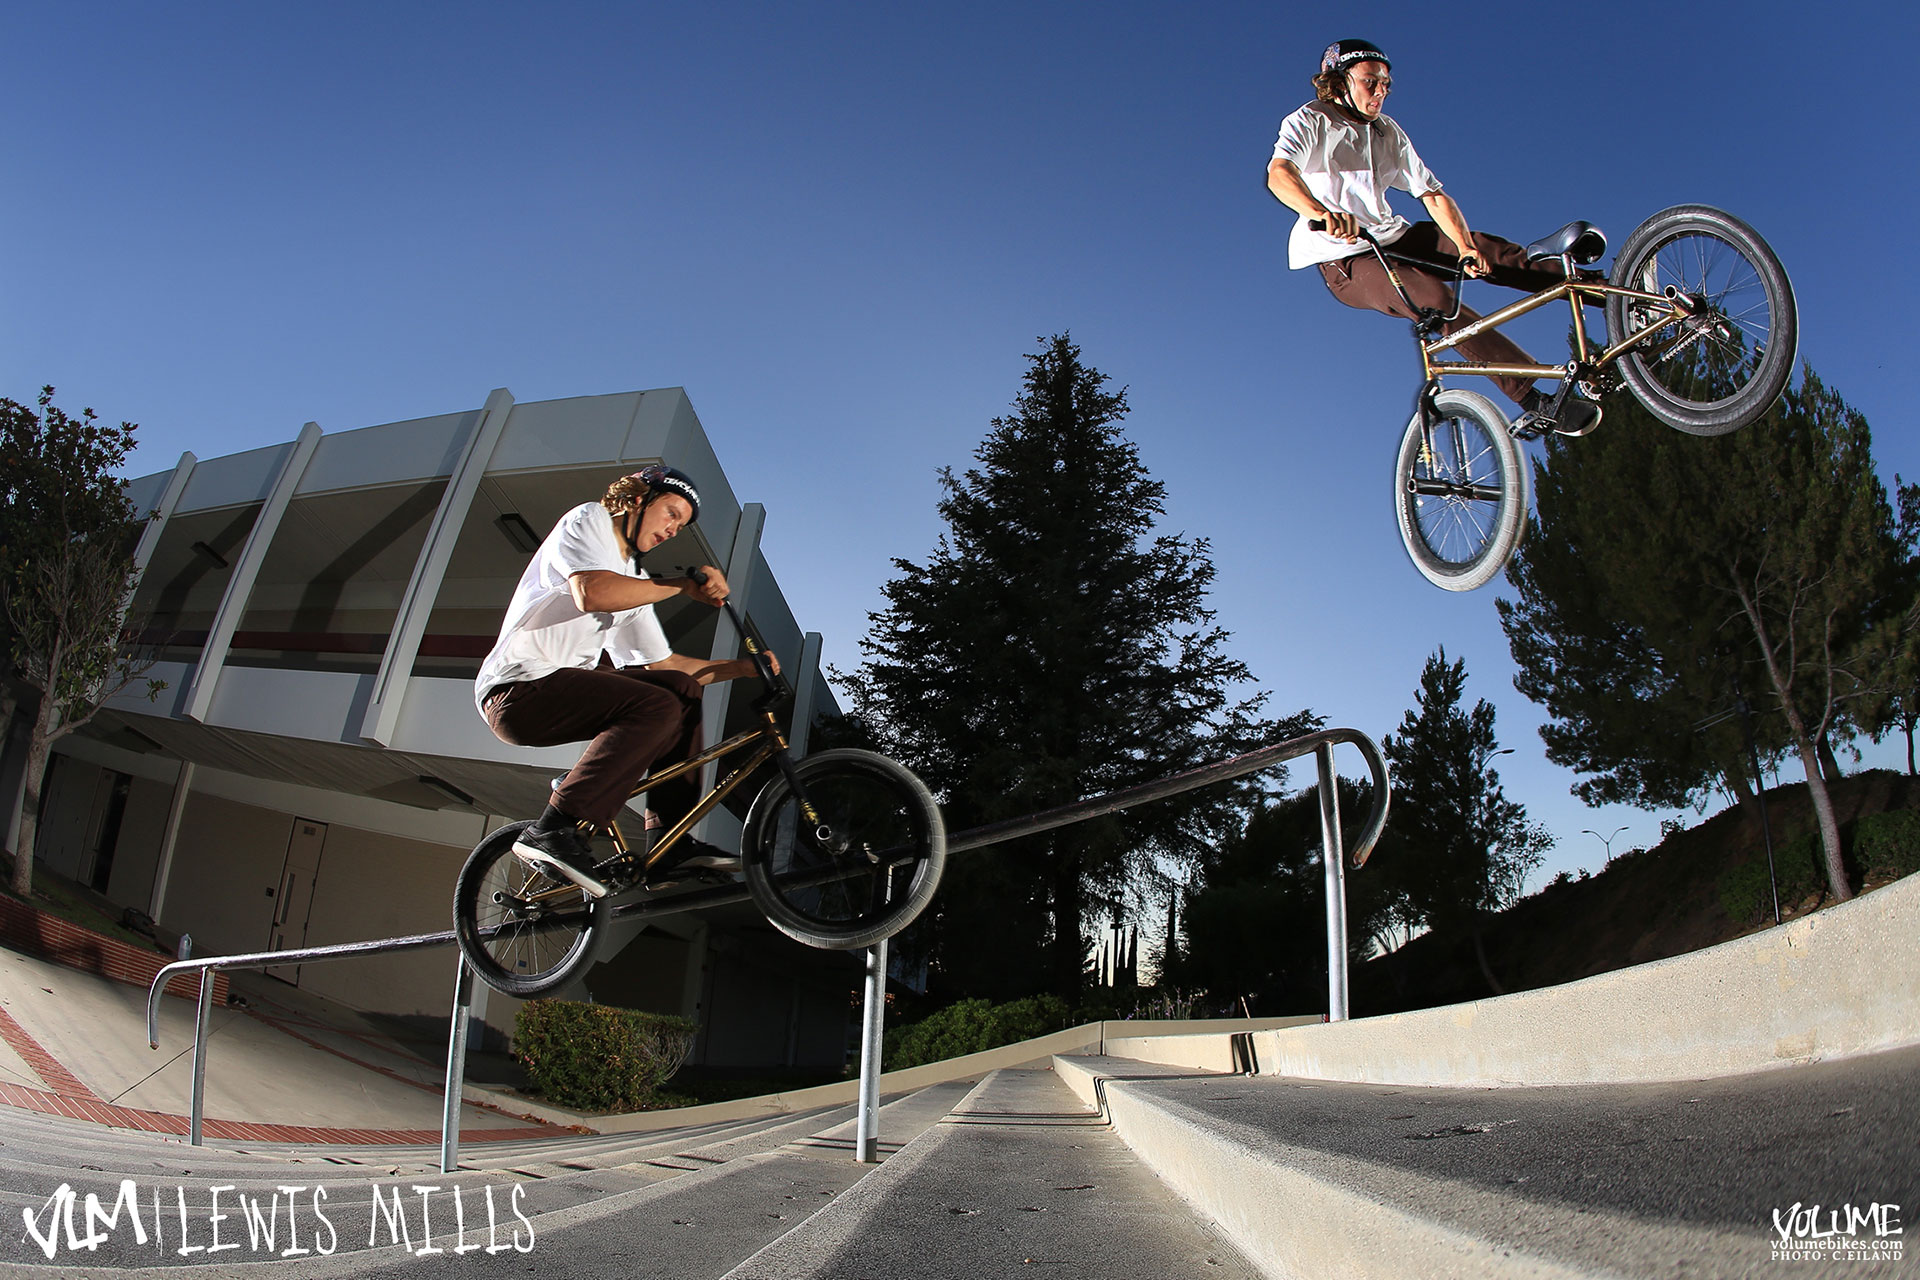 vlm-lewis-common-photo-up-whip180